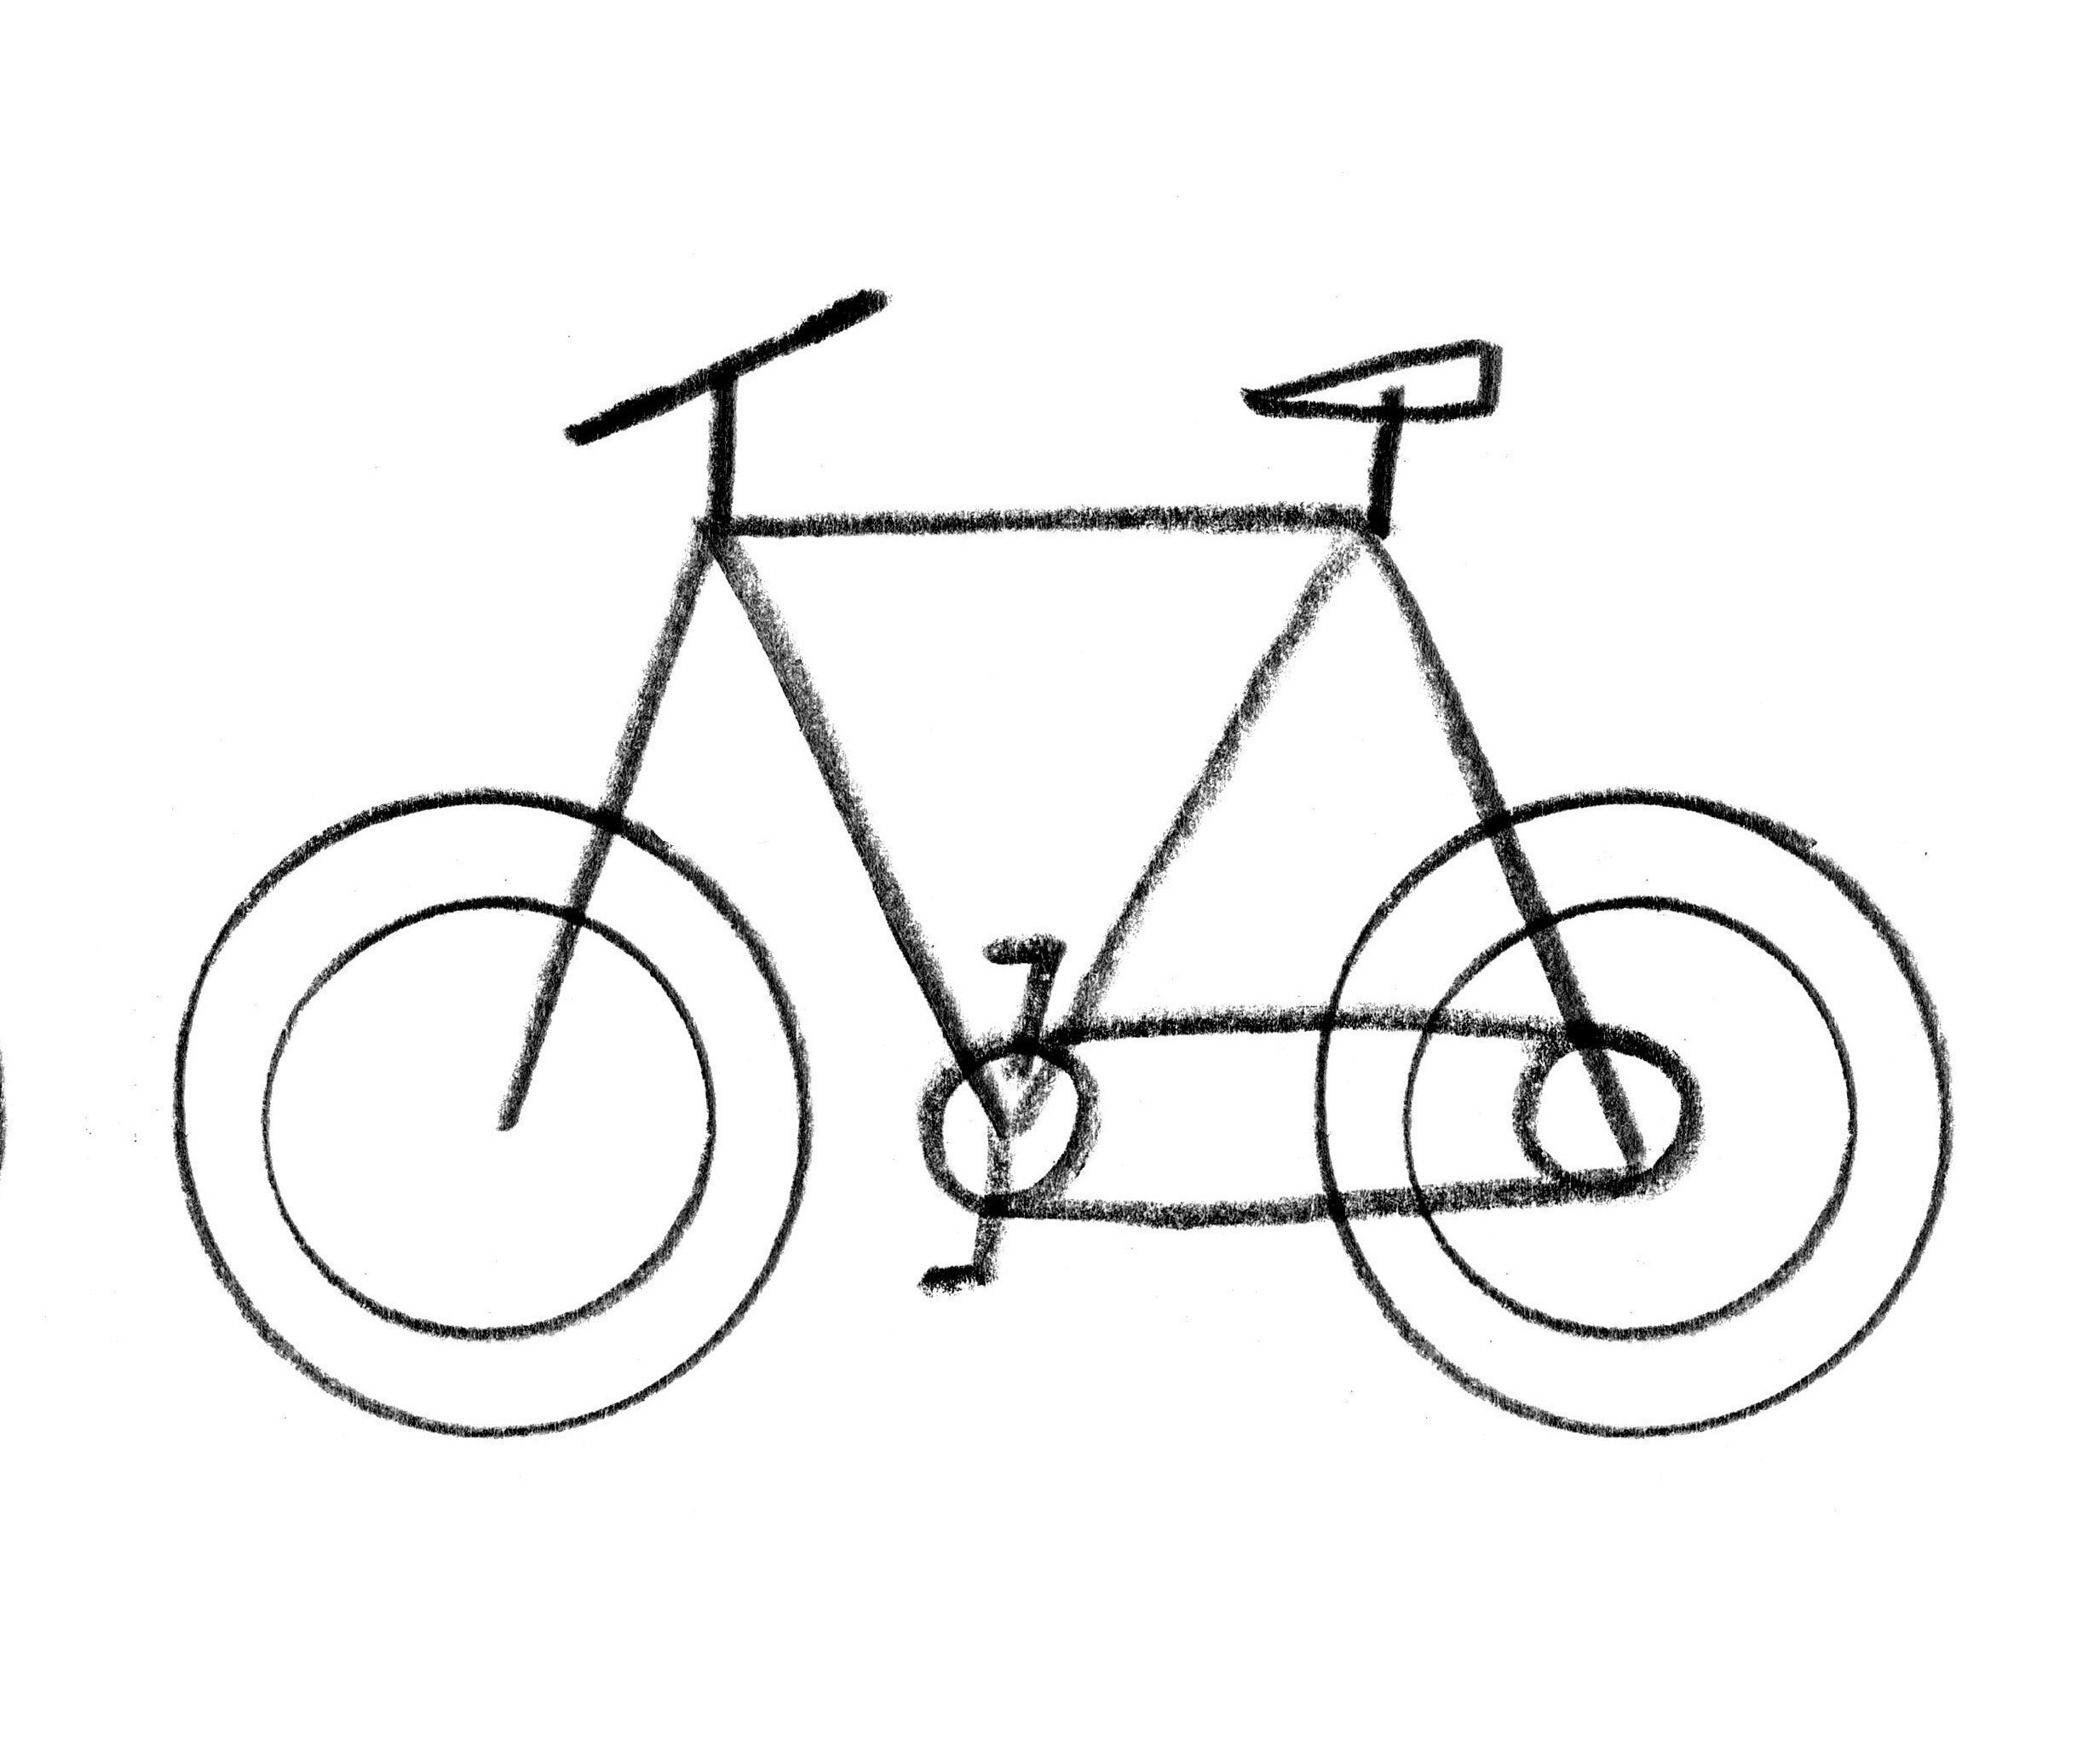 2465x2042 How To Draw A Bicycle Extract From Let's Make Some Great Art By